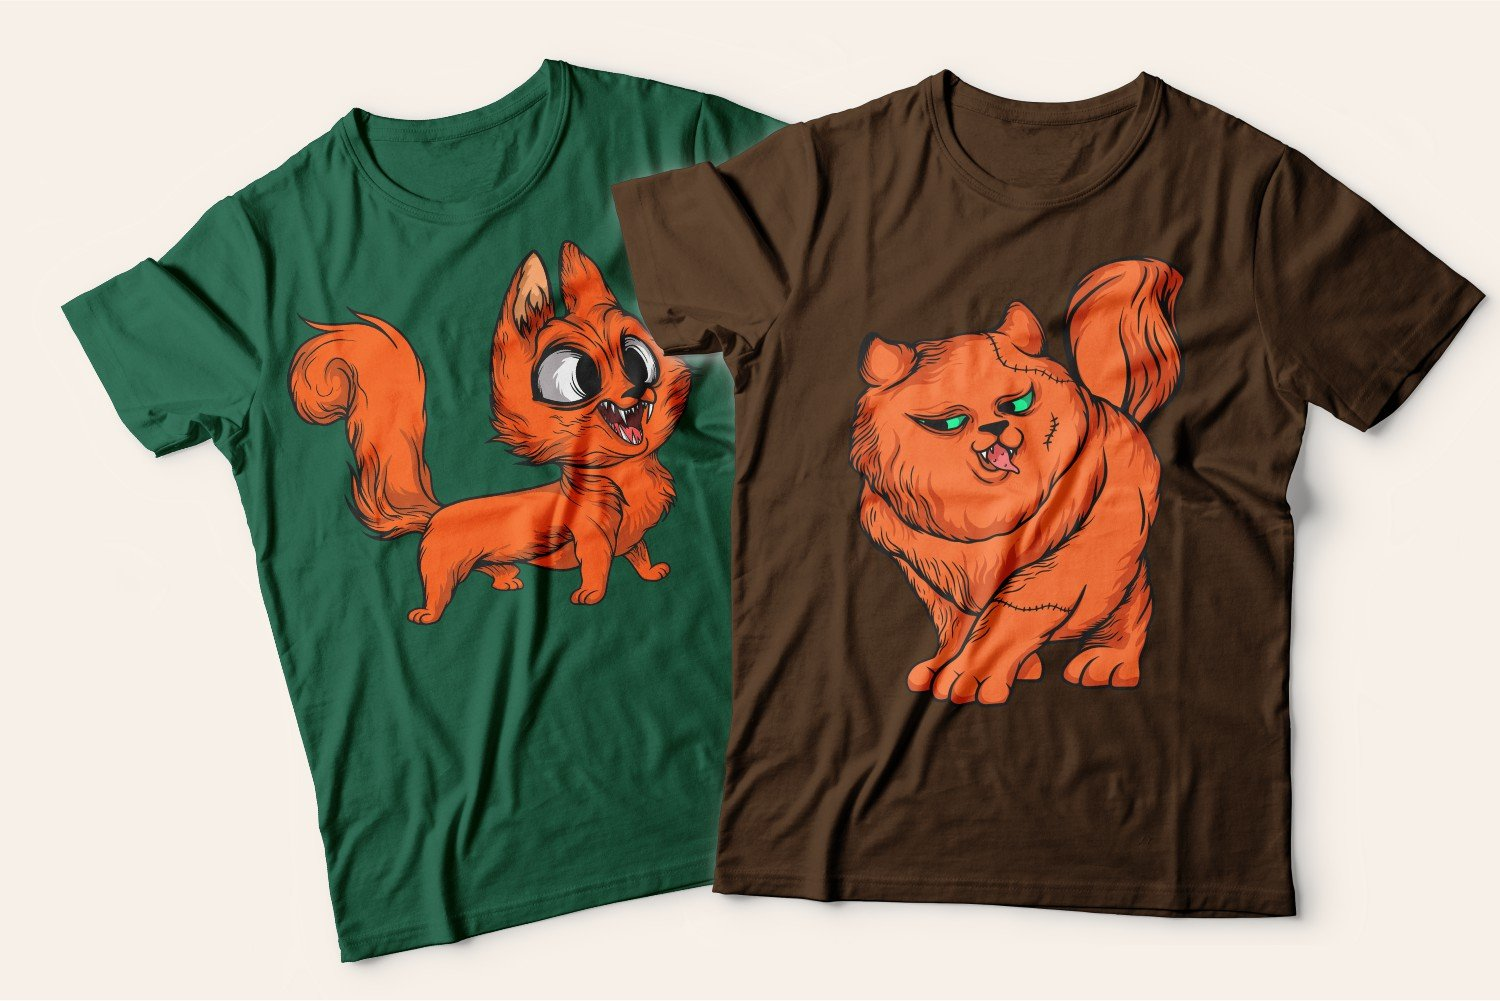 Two T-shirts with cats: one is green with a playful cheerful ginger kitten, the other is brown with a flirty ginger cat.